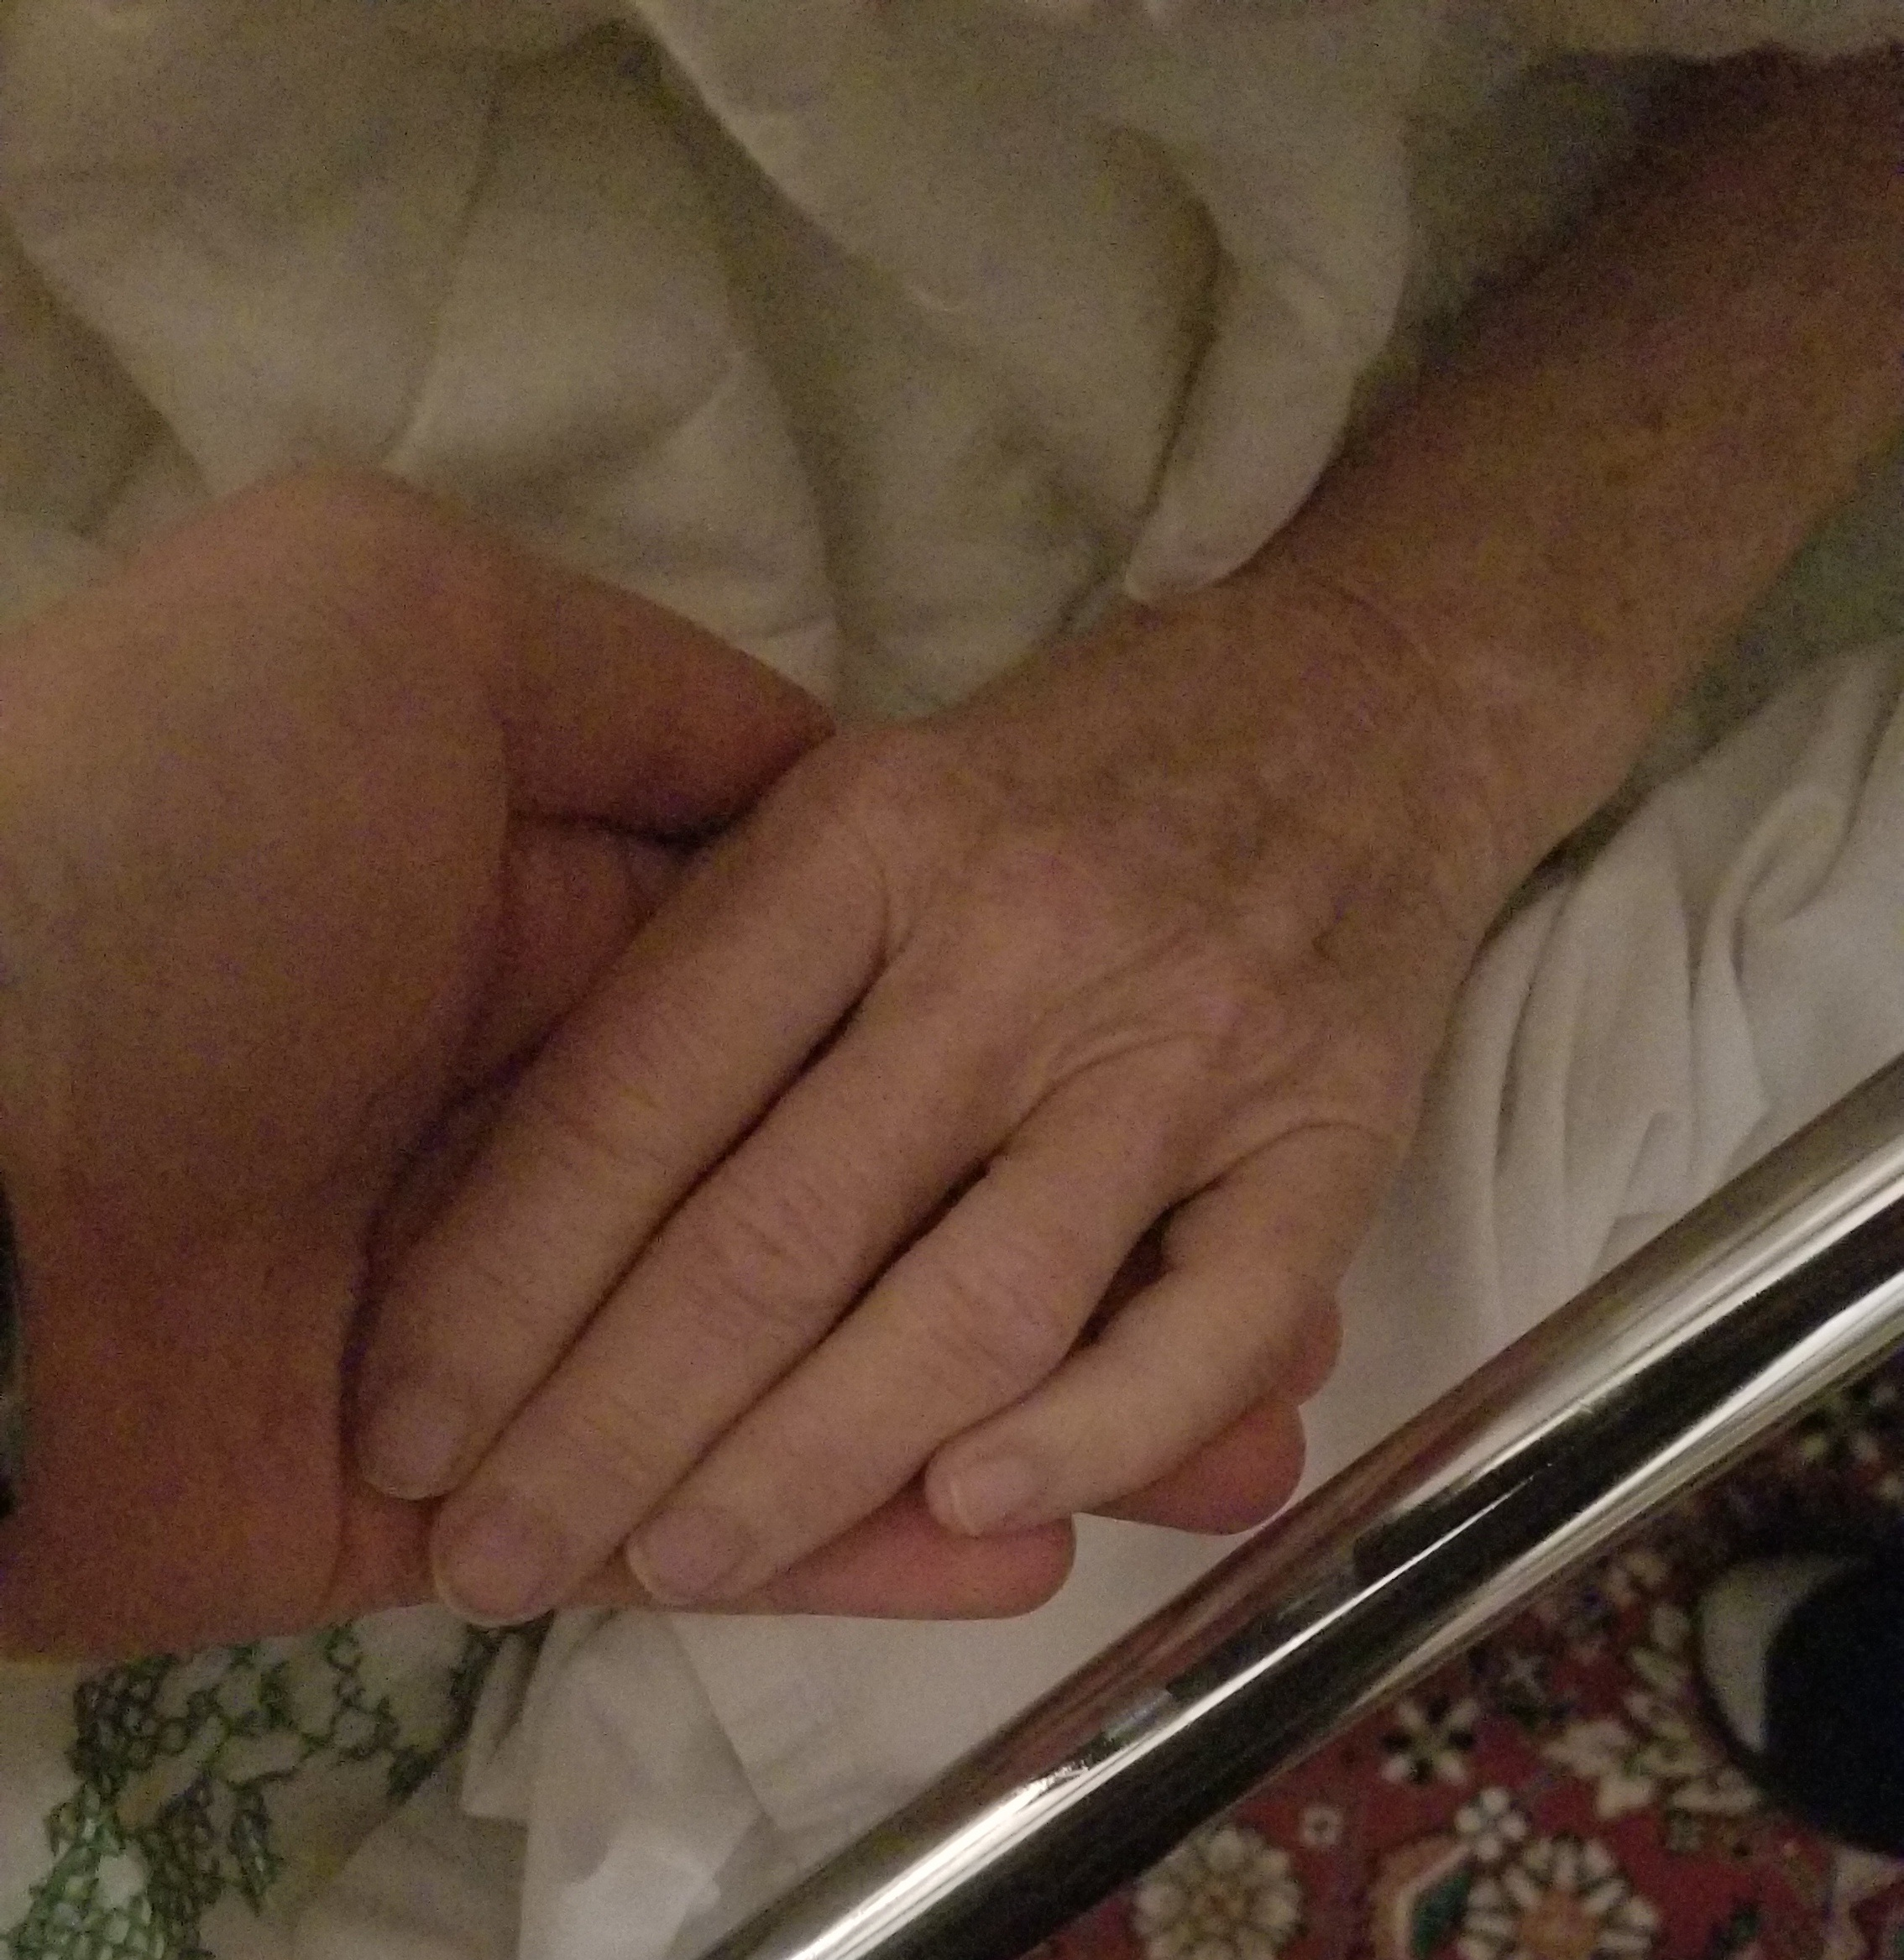 Holding hands - This was taken March 6, 2018 when she was in deep coma.